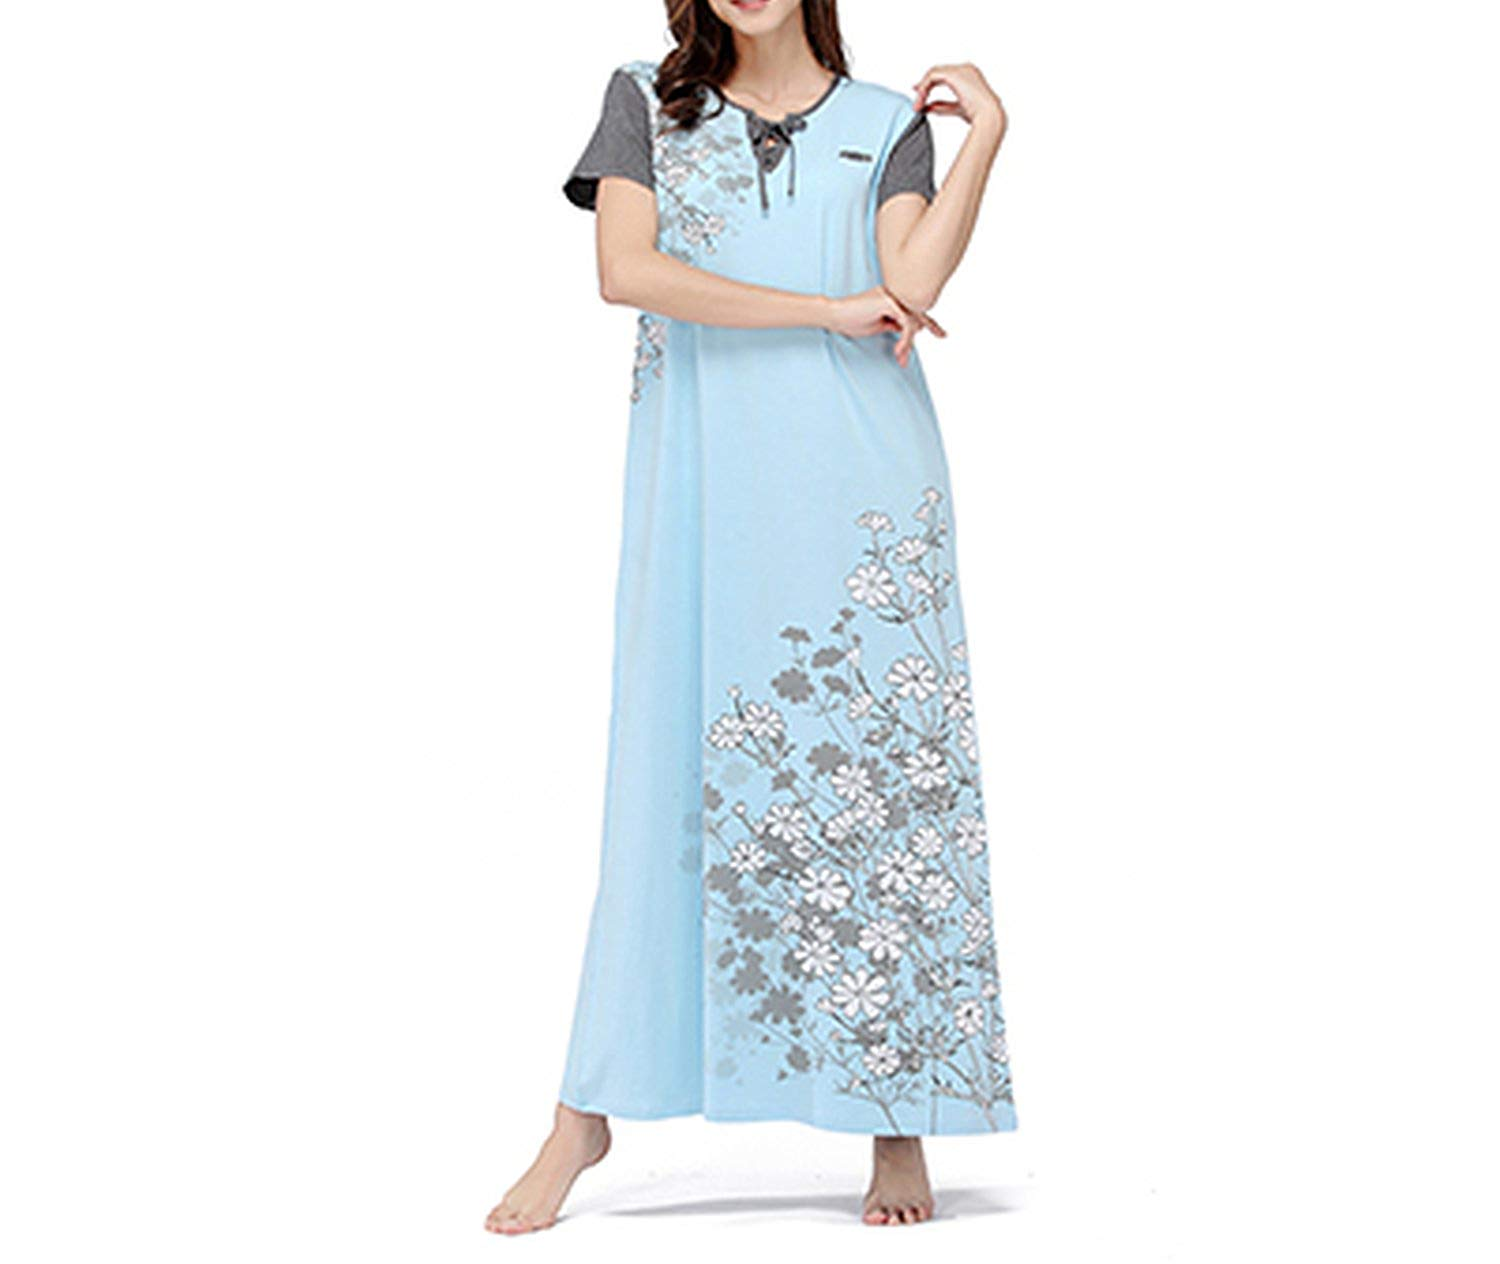 Memoriesed Nightgowns Women Nightgown Long Cotton Plus Size V-Neck Short  Sleeve Floral Print 81dcb7380